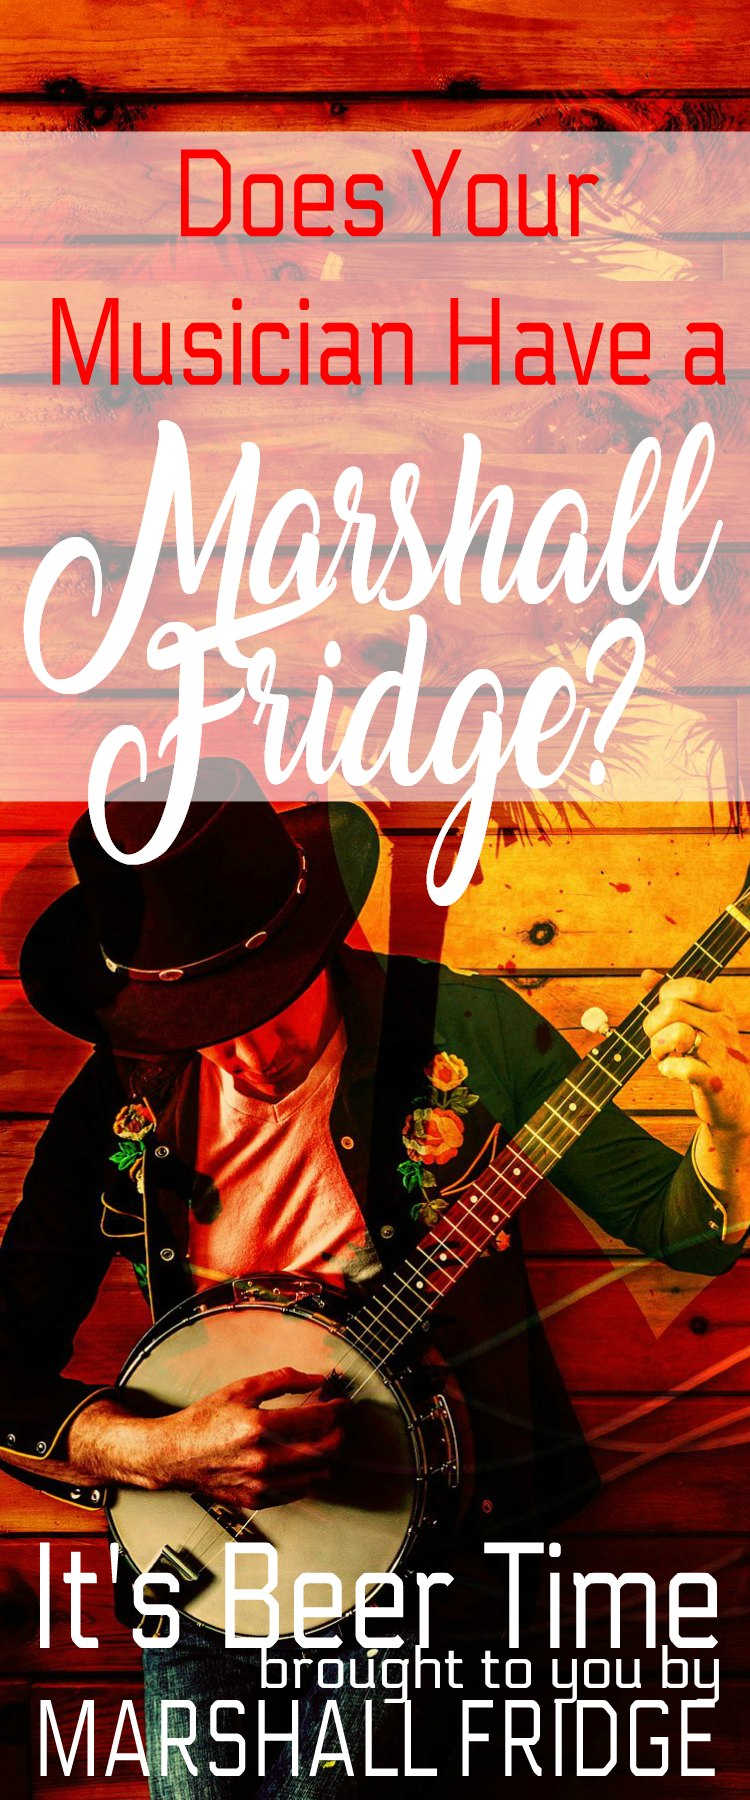 Does Your Musician Have a Marshall Fridge?